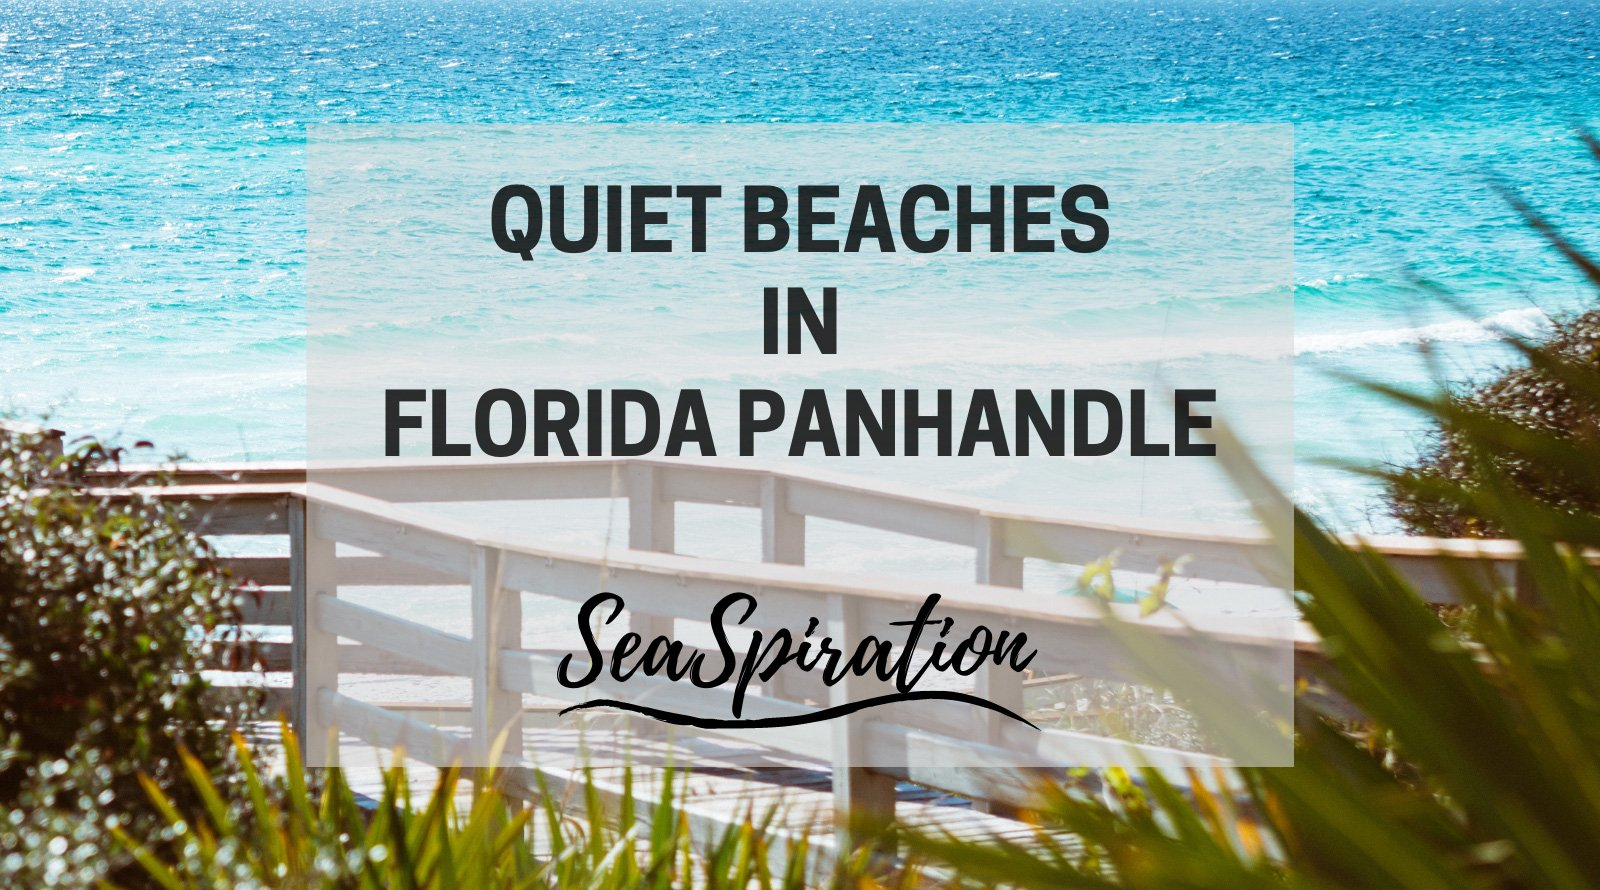 Least crowded beaches in Florida Panhandle